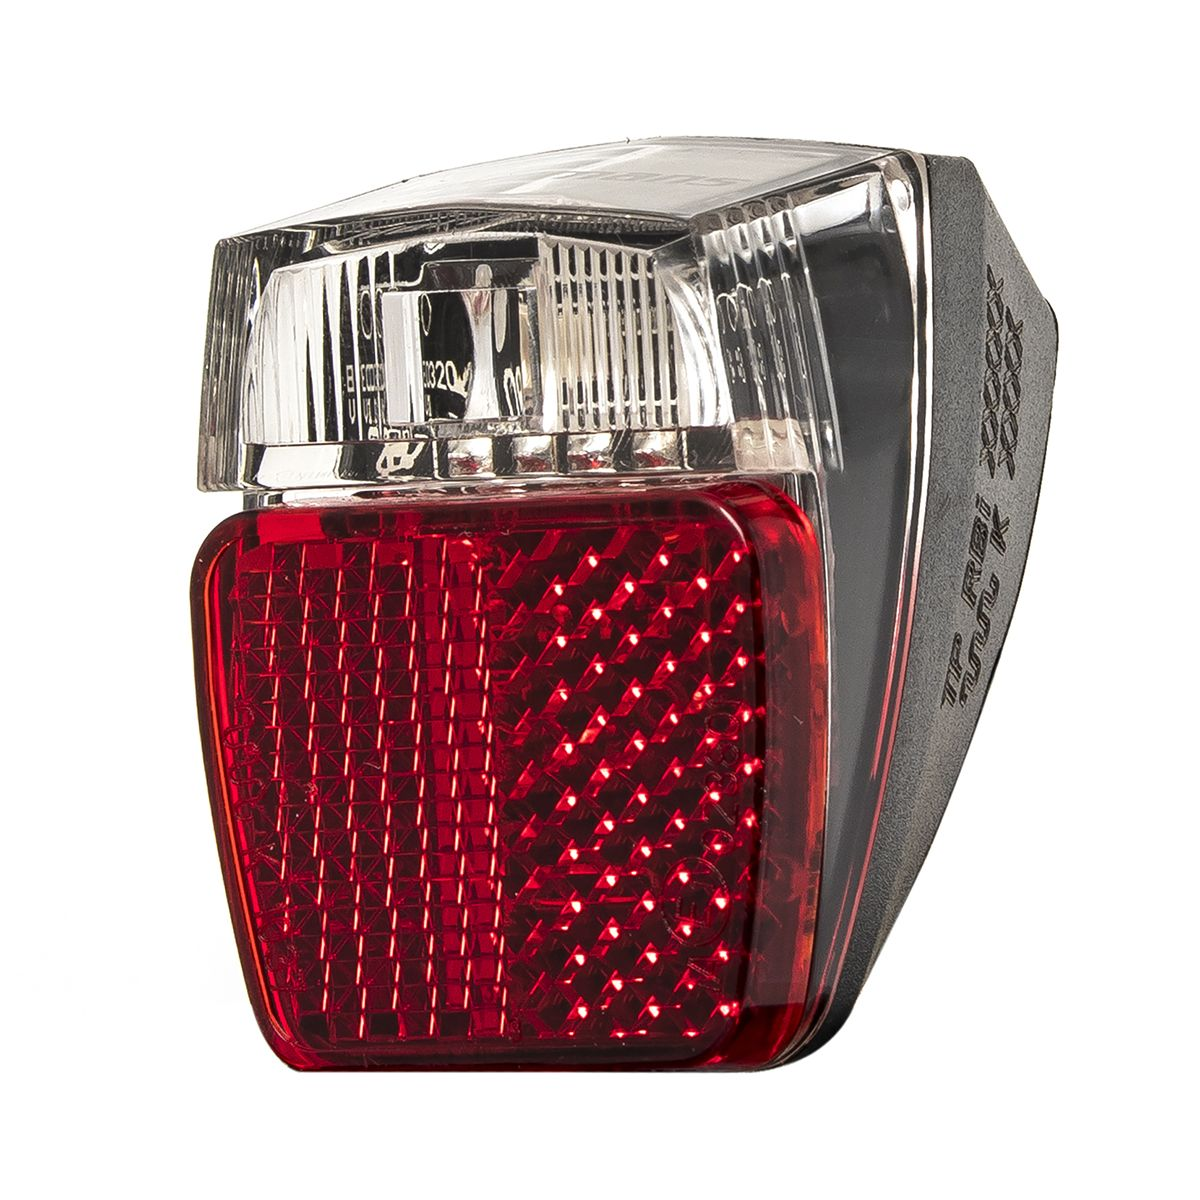 H-Trace Mini dynamo-powered rear light